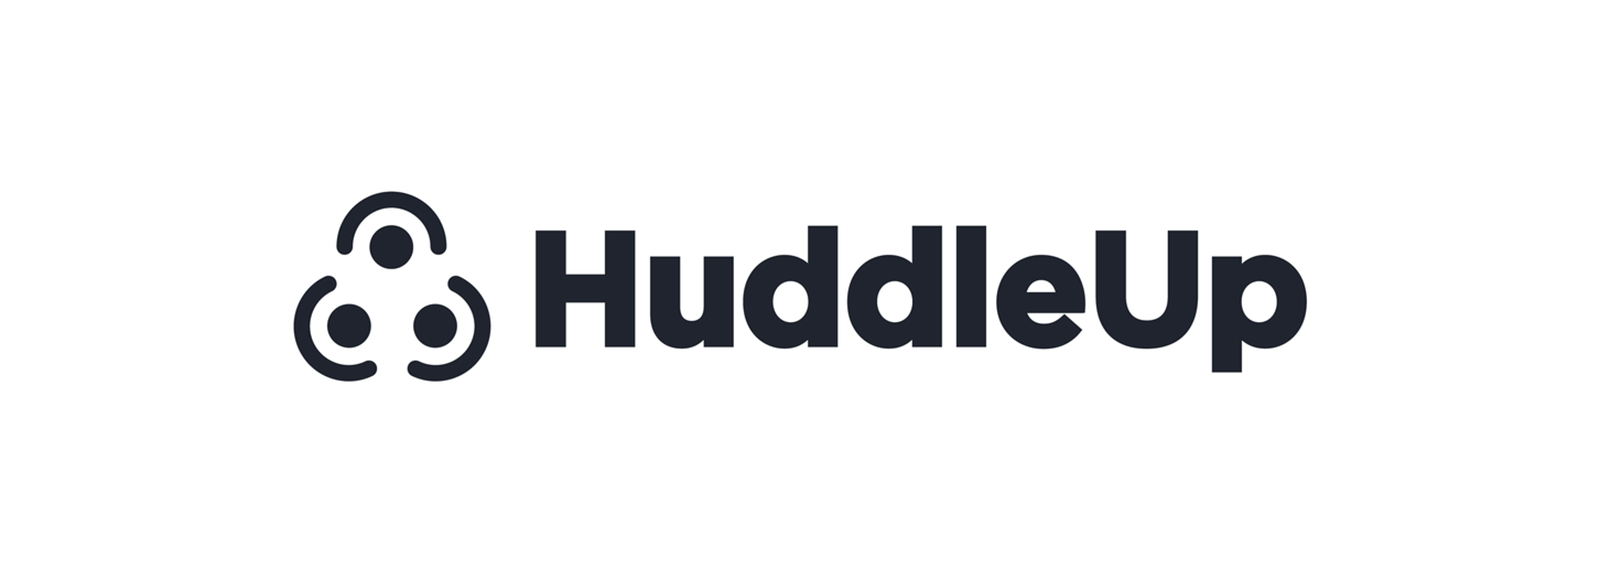 huddle-up-resized.png